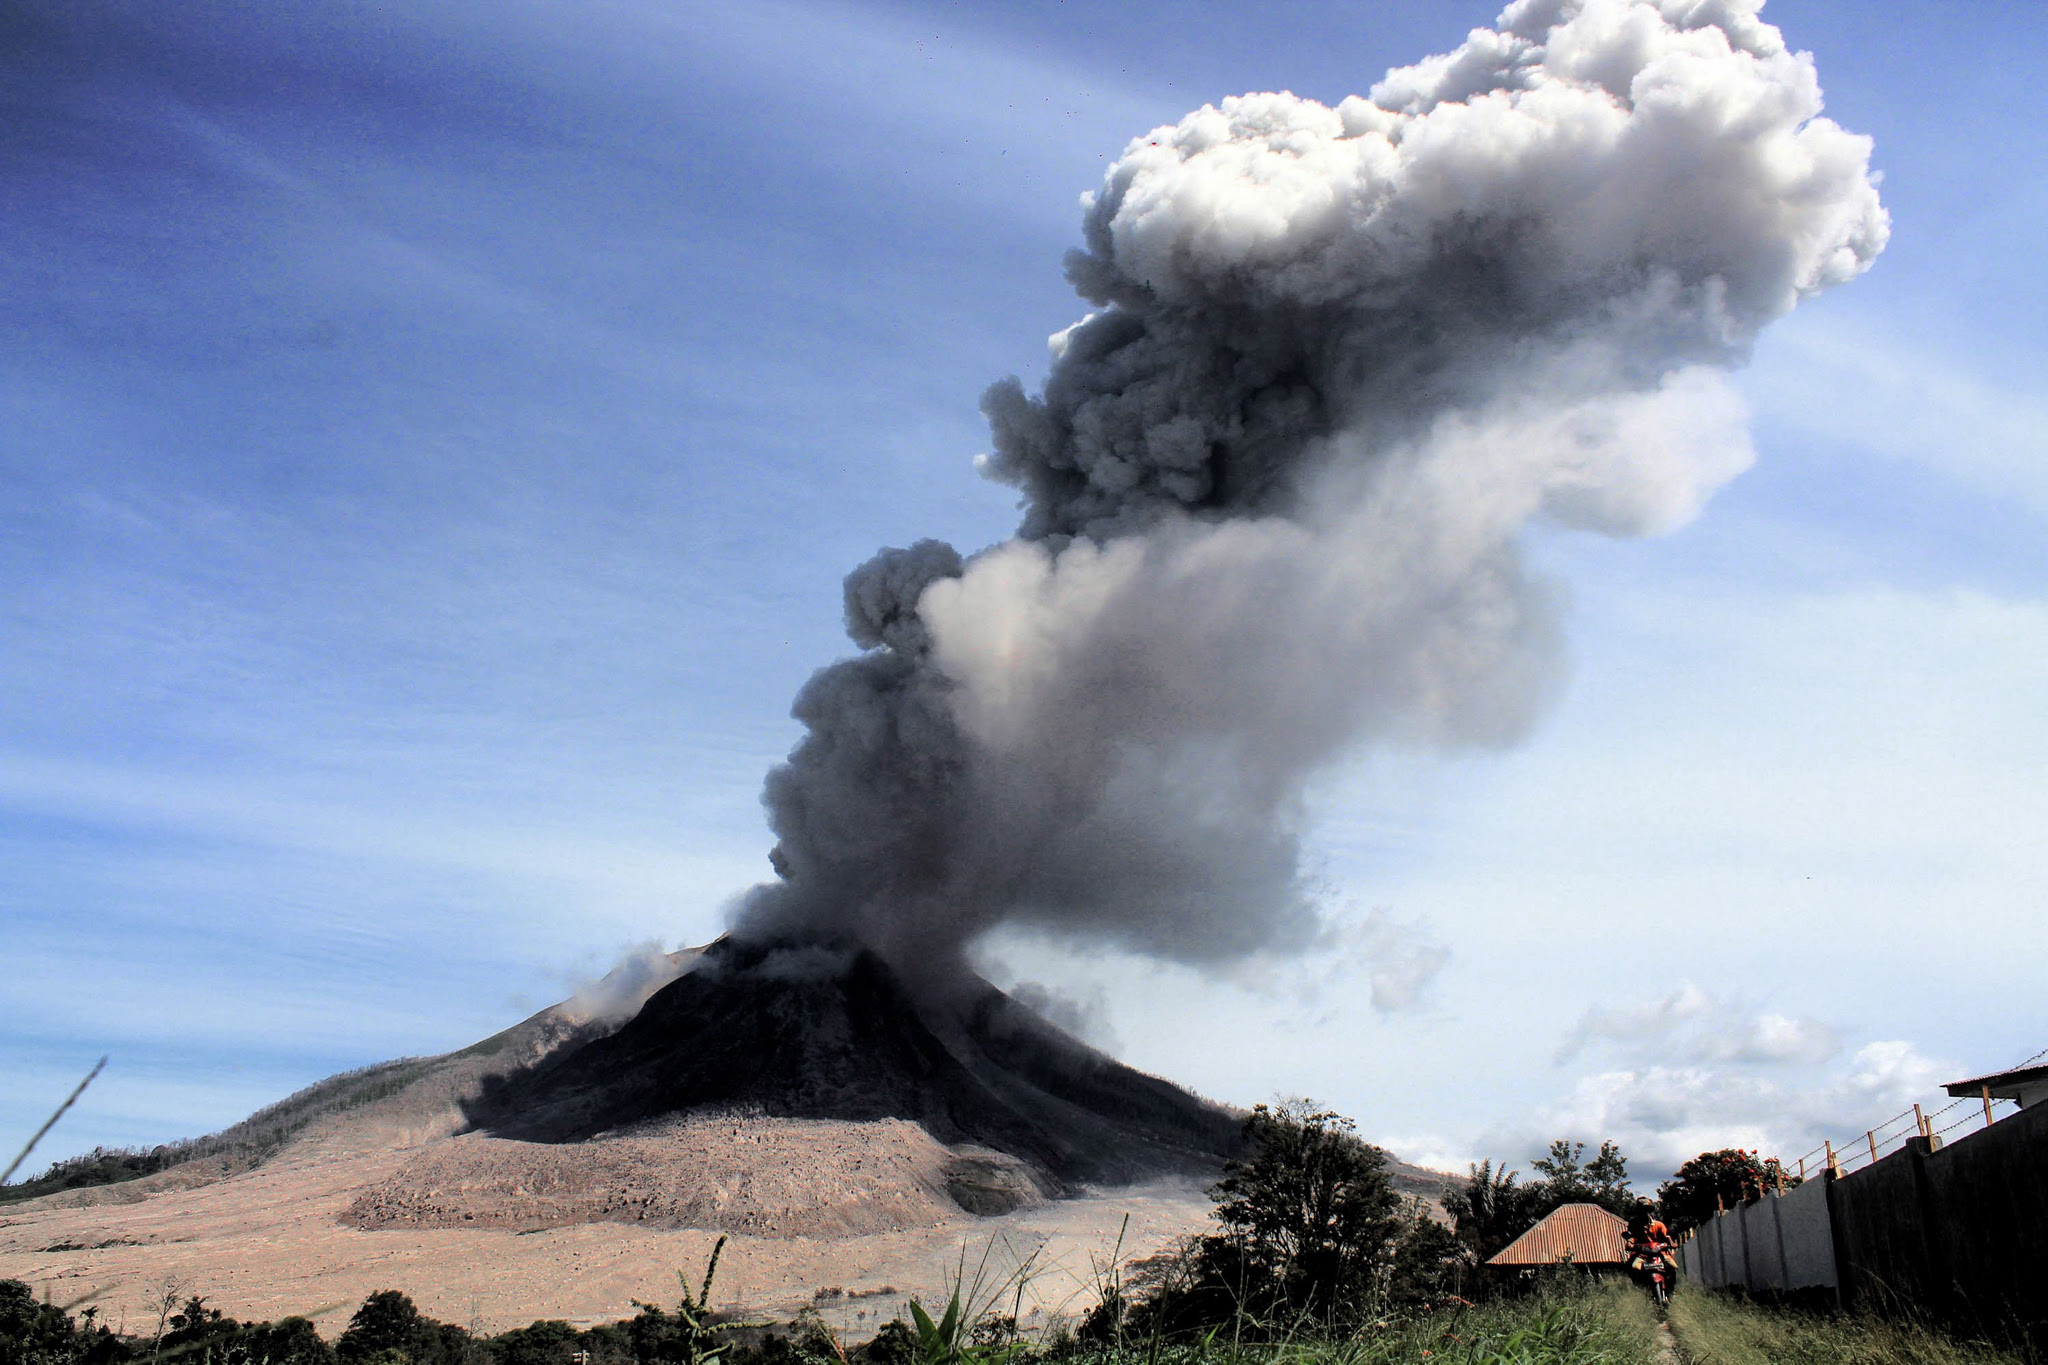 Mount Sinabung volcano spews volcanic ash into the air as seen from the Karo district in North Sumatra province, on May 25, 2016. Indonesian rescuers searched for survivors in scorched villages and devastated farmlands on May 23 after the volcano erupted in clouds of searing ash and gas, killing seven and leaving others fighting life-threatening burns. / AFP PHOTO / GATHA GINTINGGATHA GINTING/AFP/Getty Images